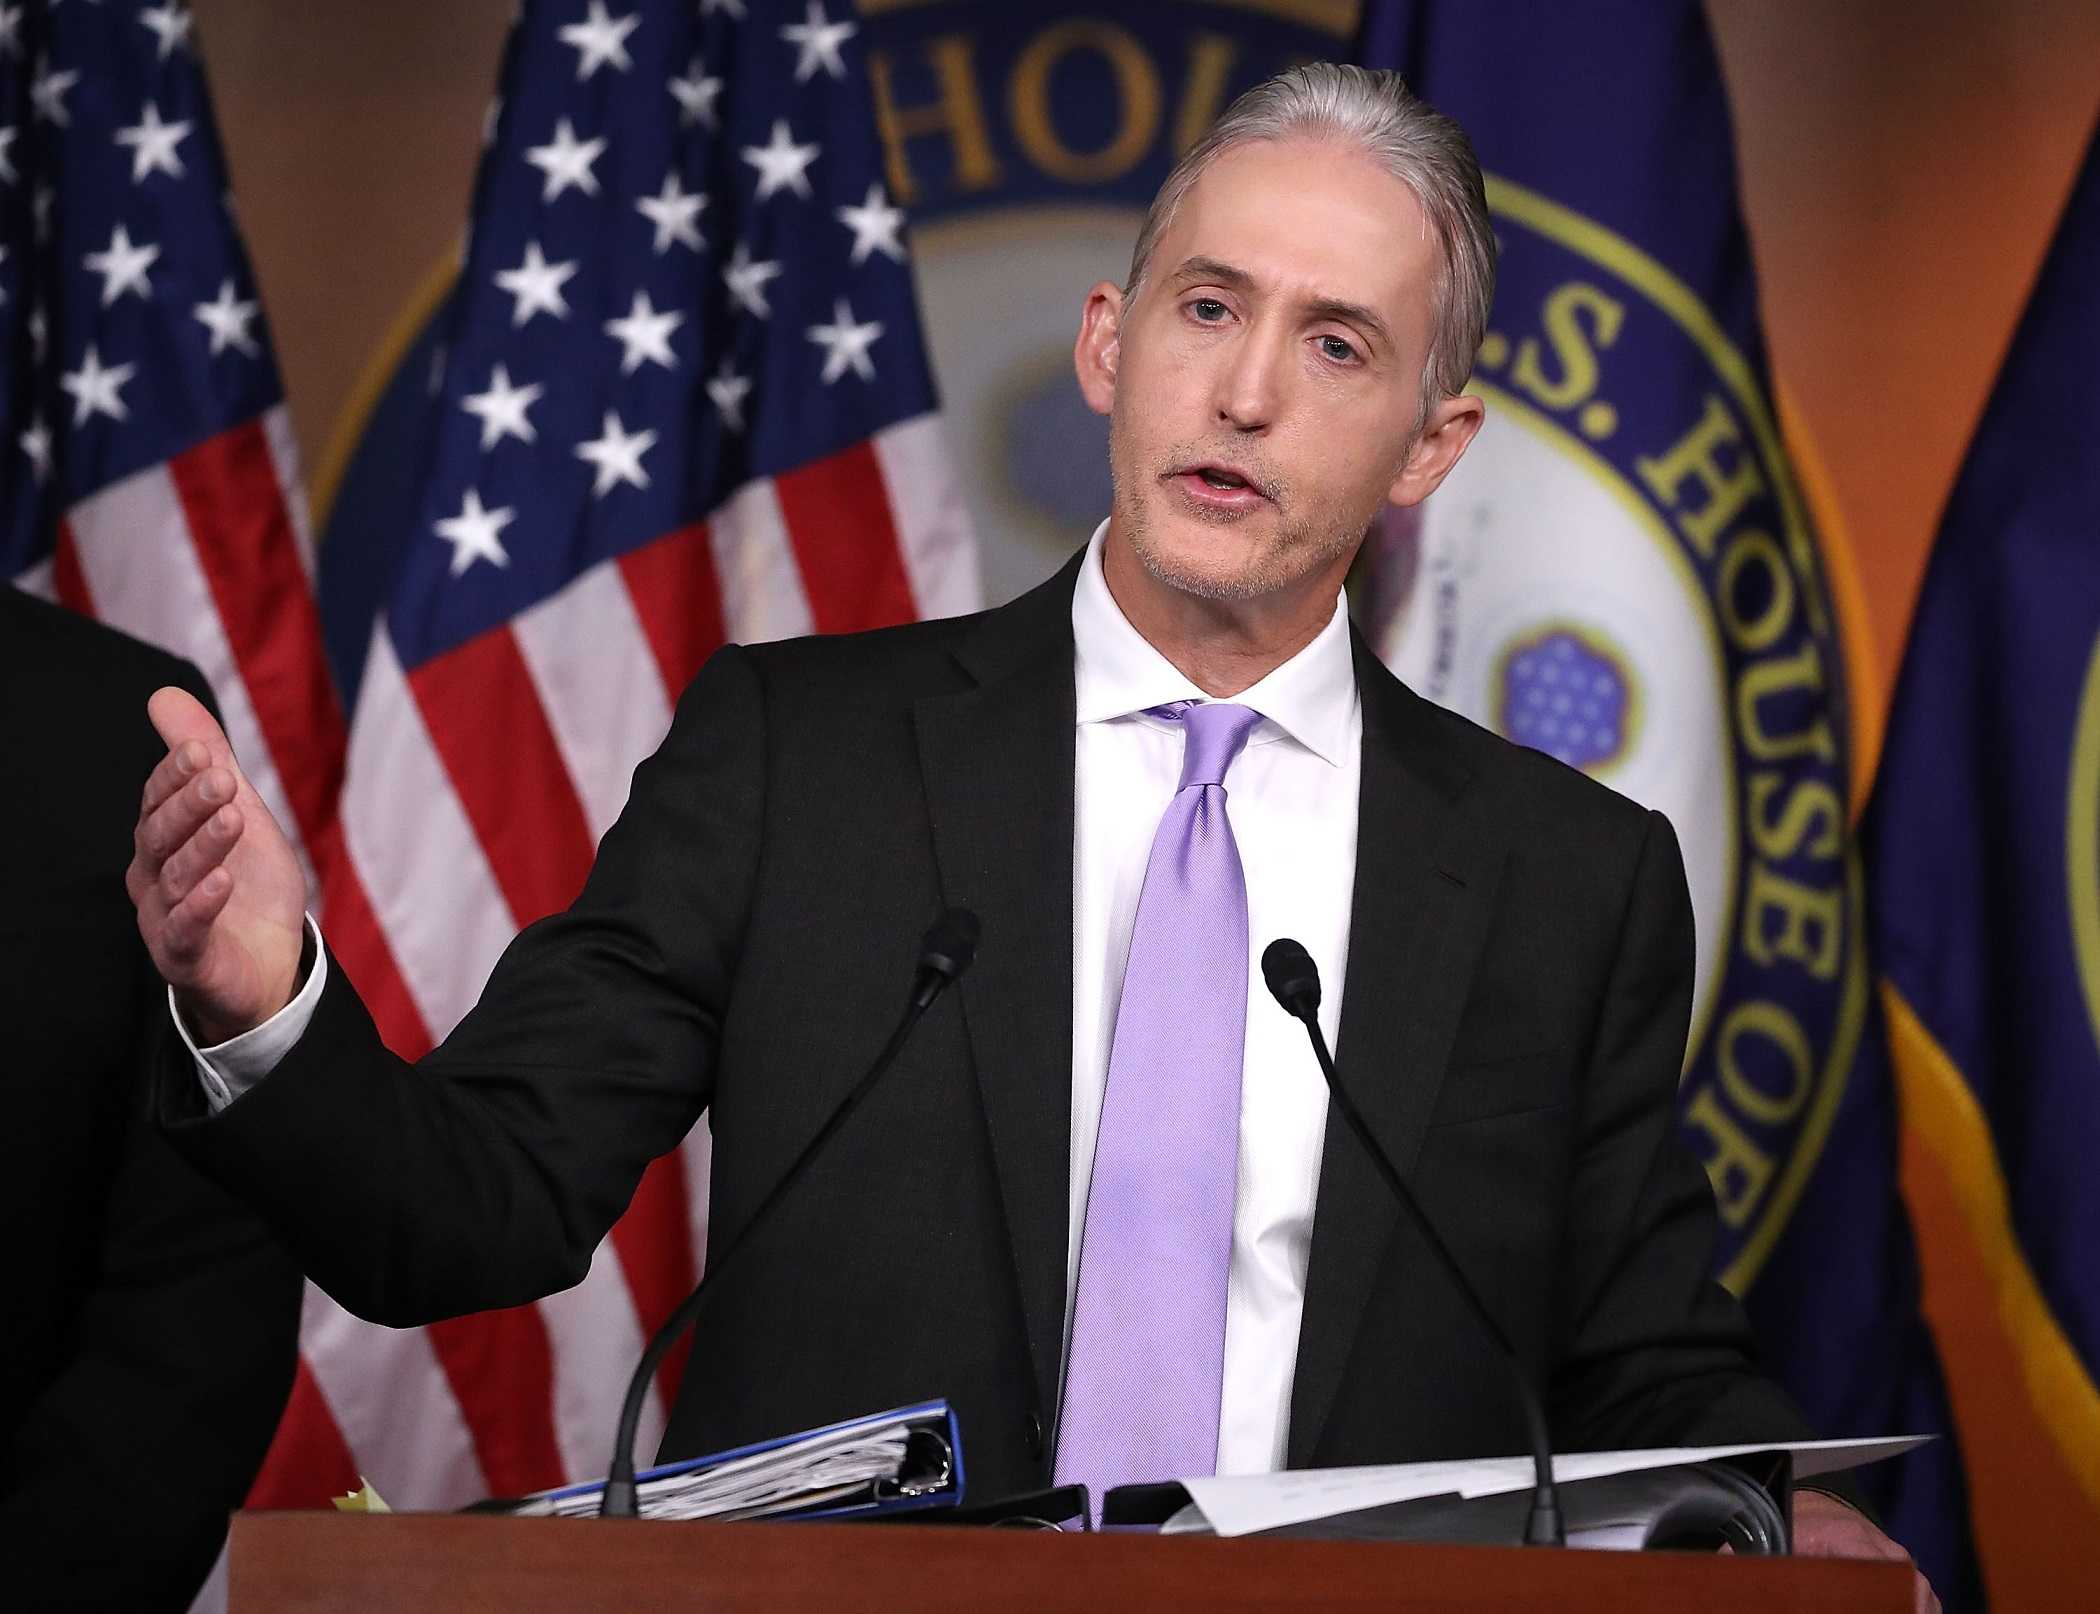 GOP Rep. Trey Gowdy will not seek re-election